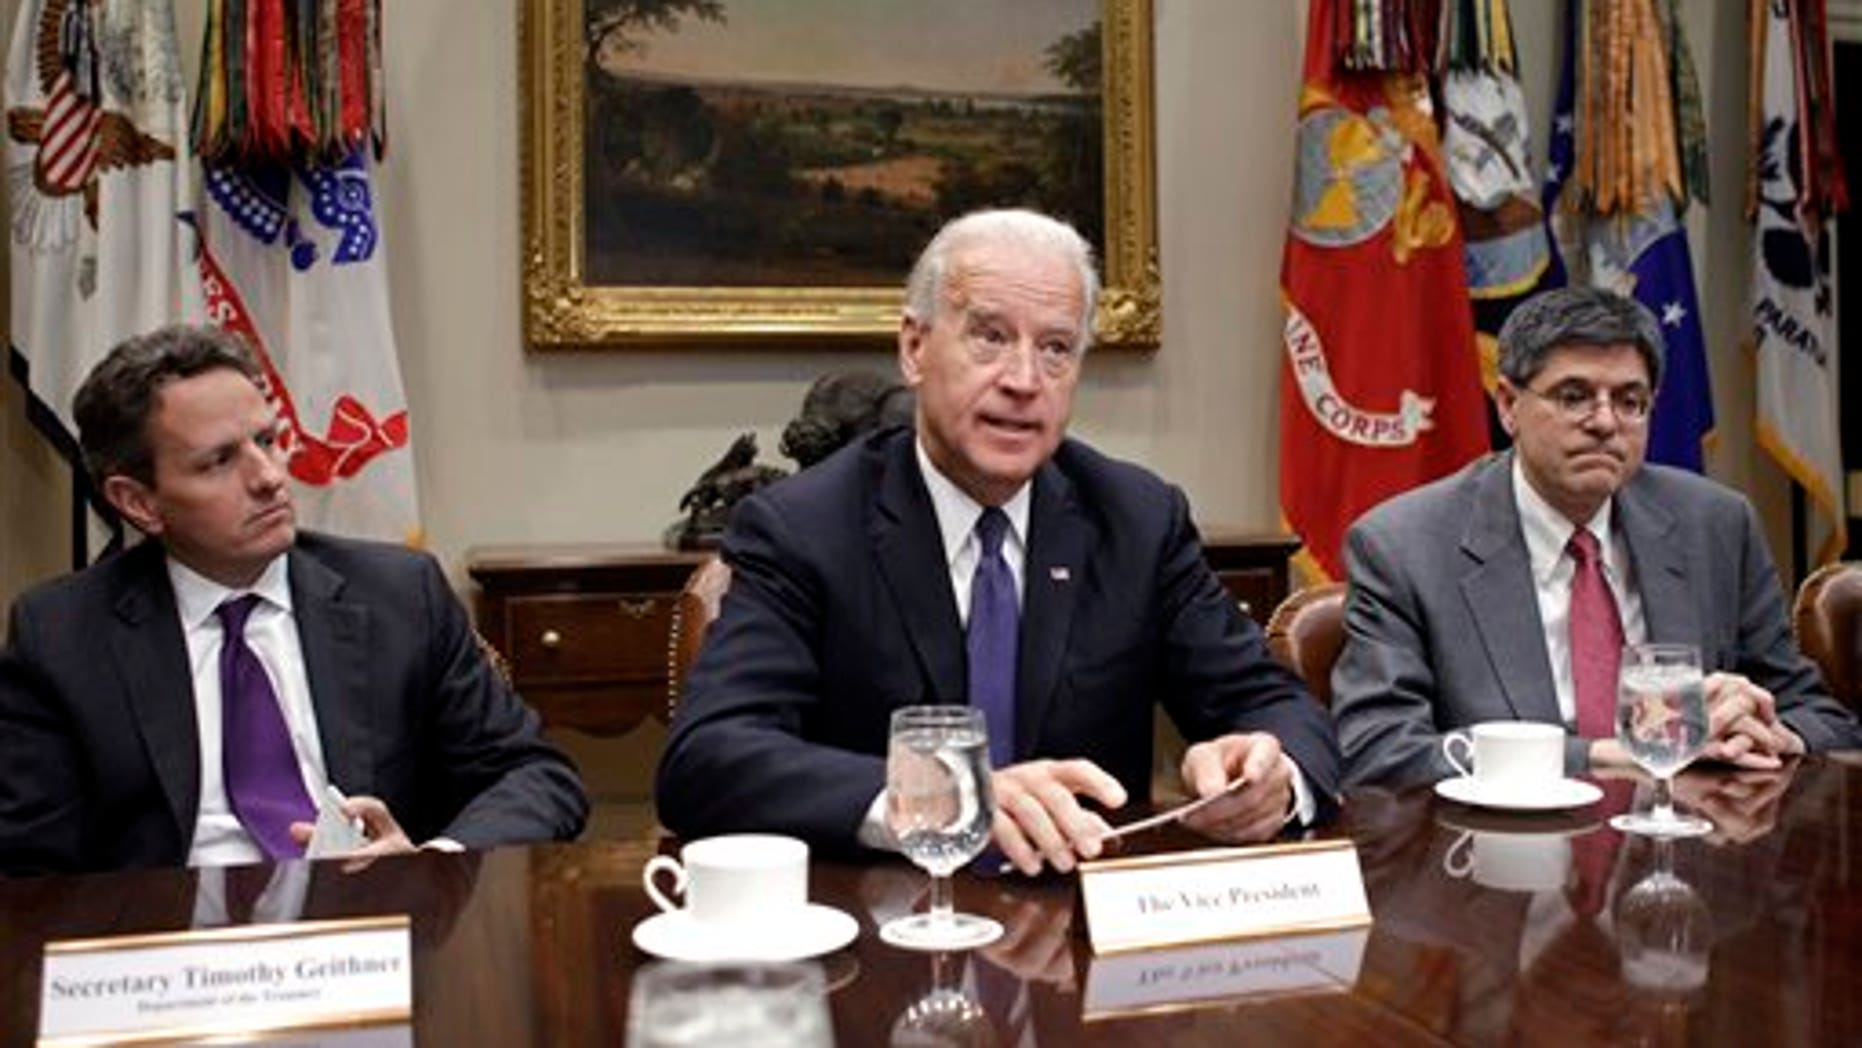 December 2010: VP Joe Biden and Treasury Secretary Tim Geithner during a meeting at the White House. Biden is to begin leading a series of bipartisan talks this week on reducing the debt.